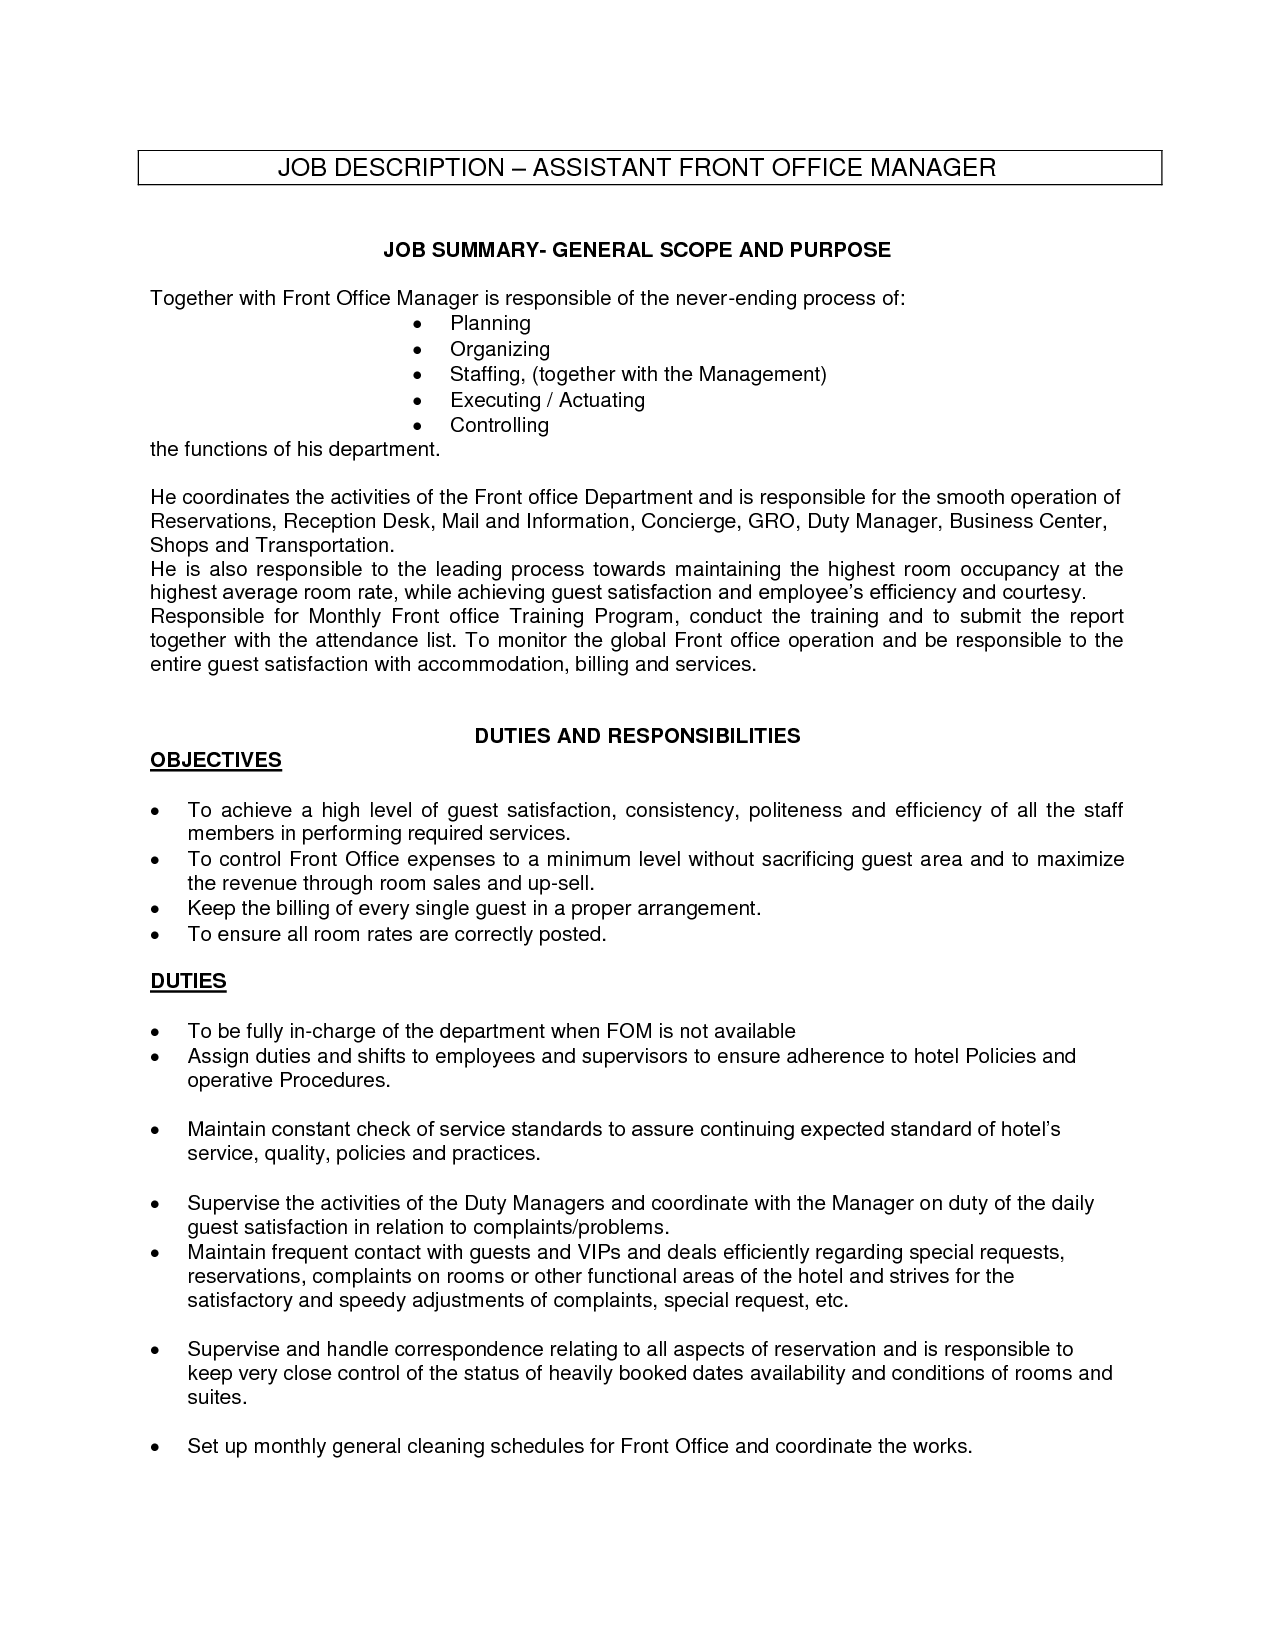 front office manager job description office assistant job description - Resumes For Office Jobs